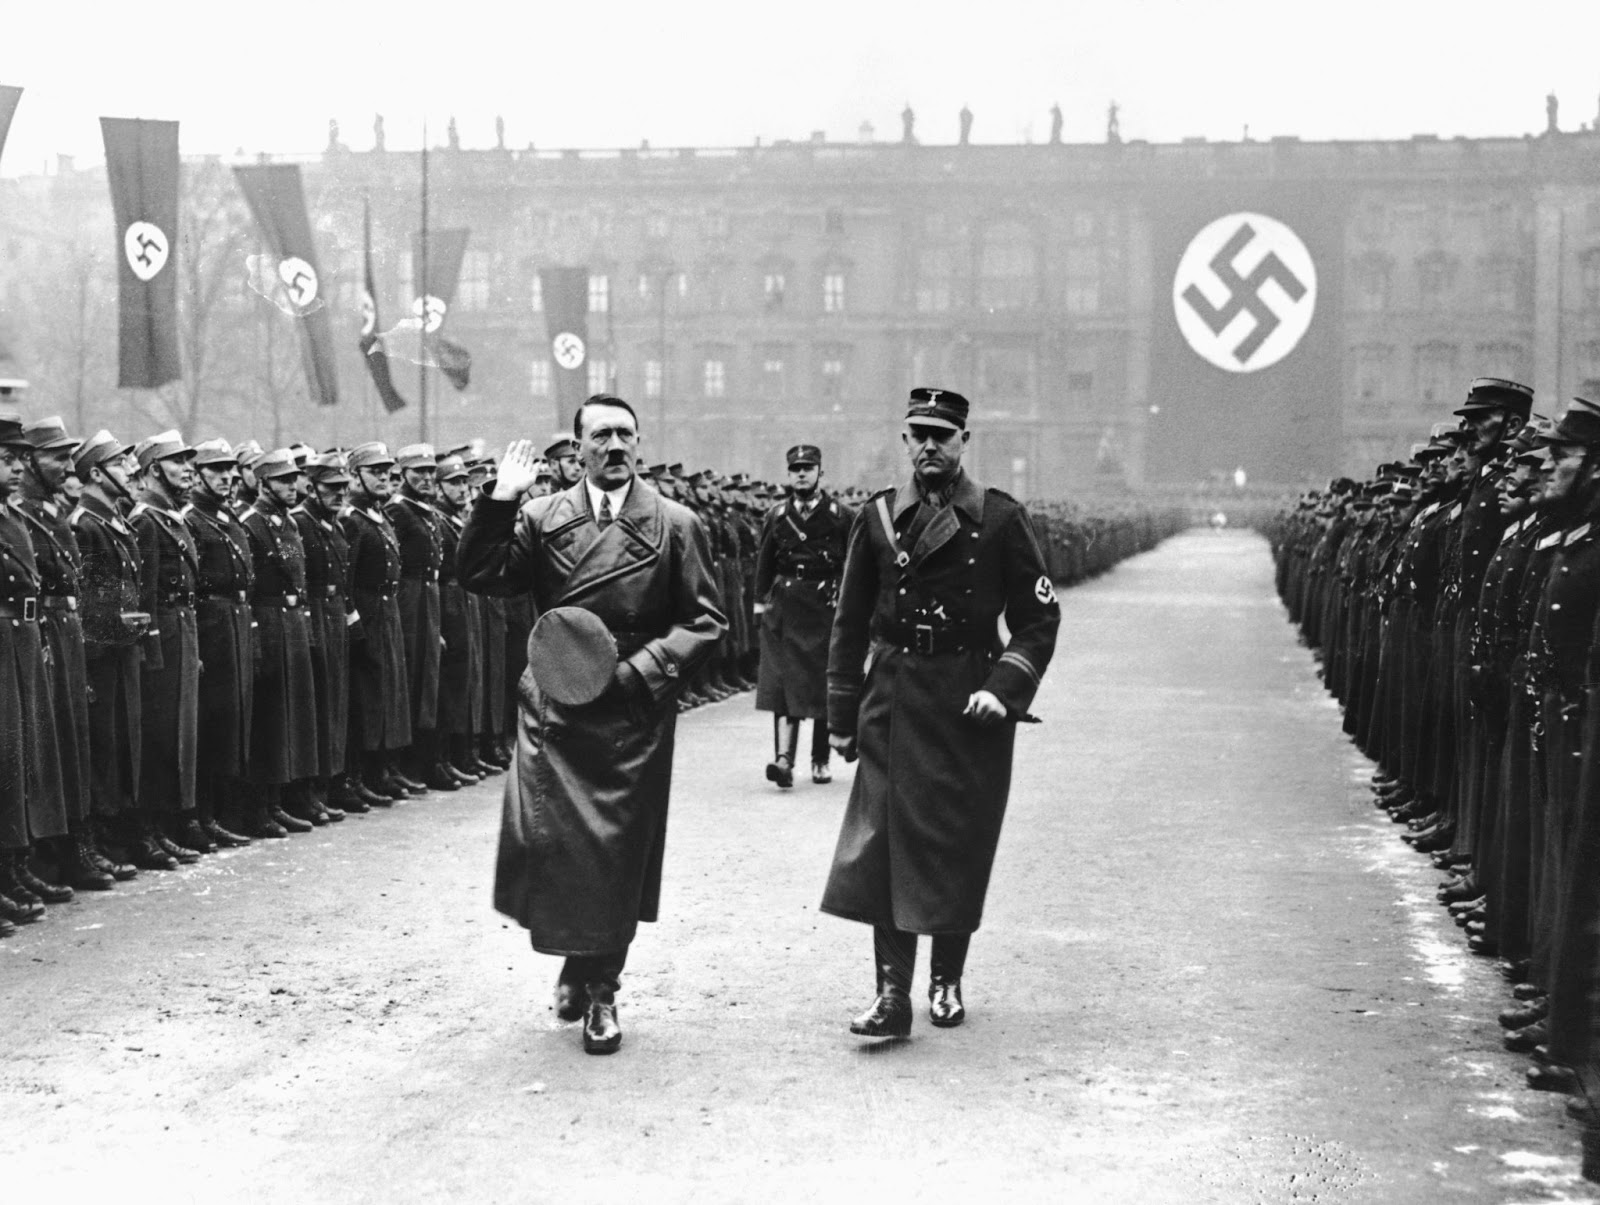 adolf hitlers influence on the world essay Research paper on hitler and stalin by lauren bradshaw  adolf hitler's rise to power 3  hitler research paper, research paper on hitler, research paper on stalin, sample research paper.